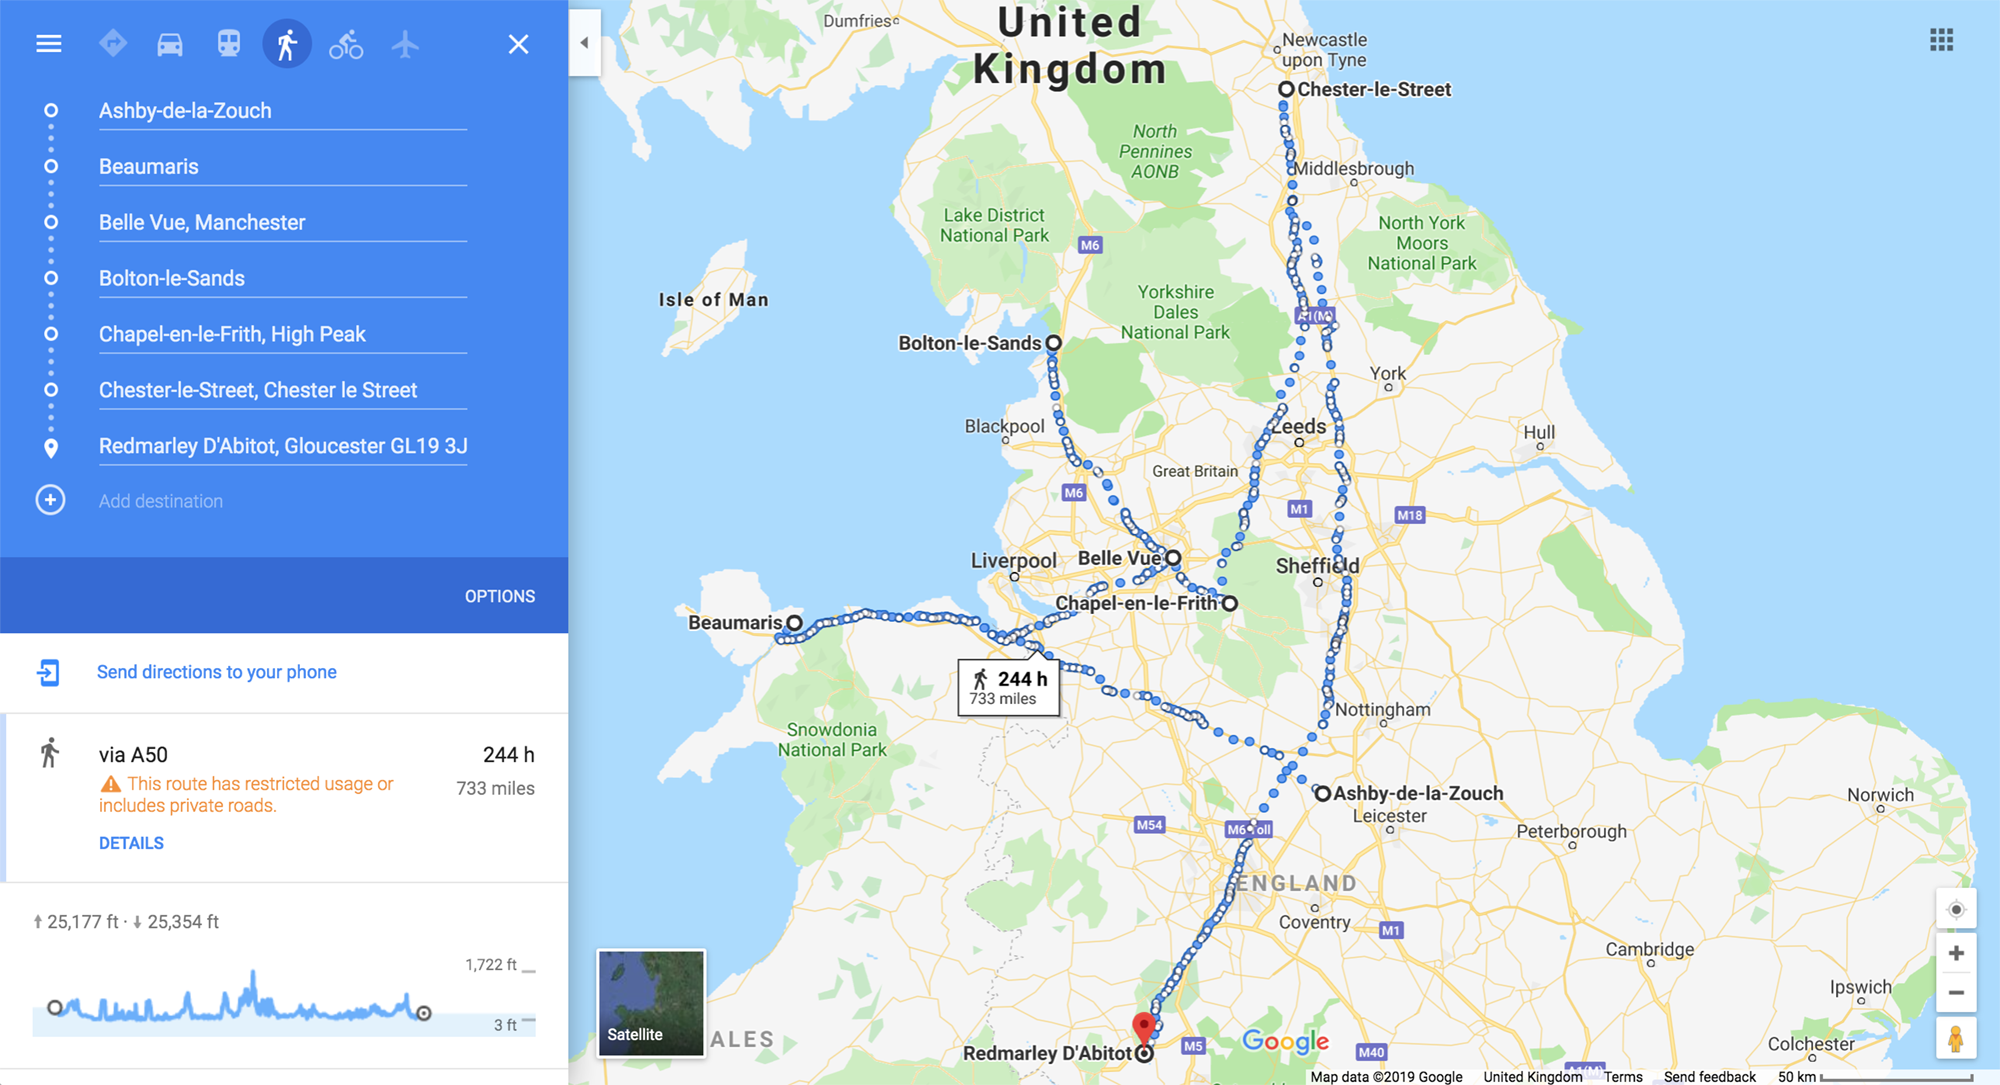 A Google Maps route plotted on foot that goes through the following places: Ashby-de-la-Zouche, Beaumaris, Belle Vue, Bolton-le-Sands, Chapel-en-le-Frith, Chester-le-Street and Redmarley D'Abitot. Google estimates it would take 244 hours to walk, 733 miles in total.